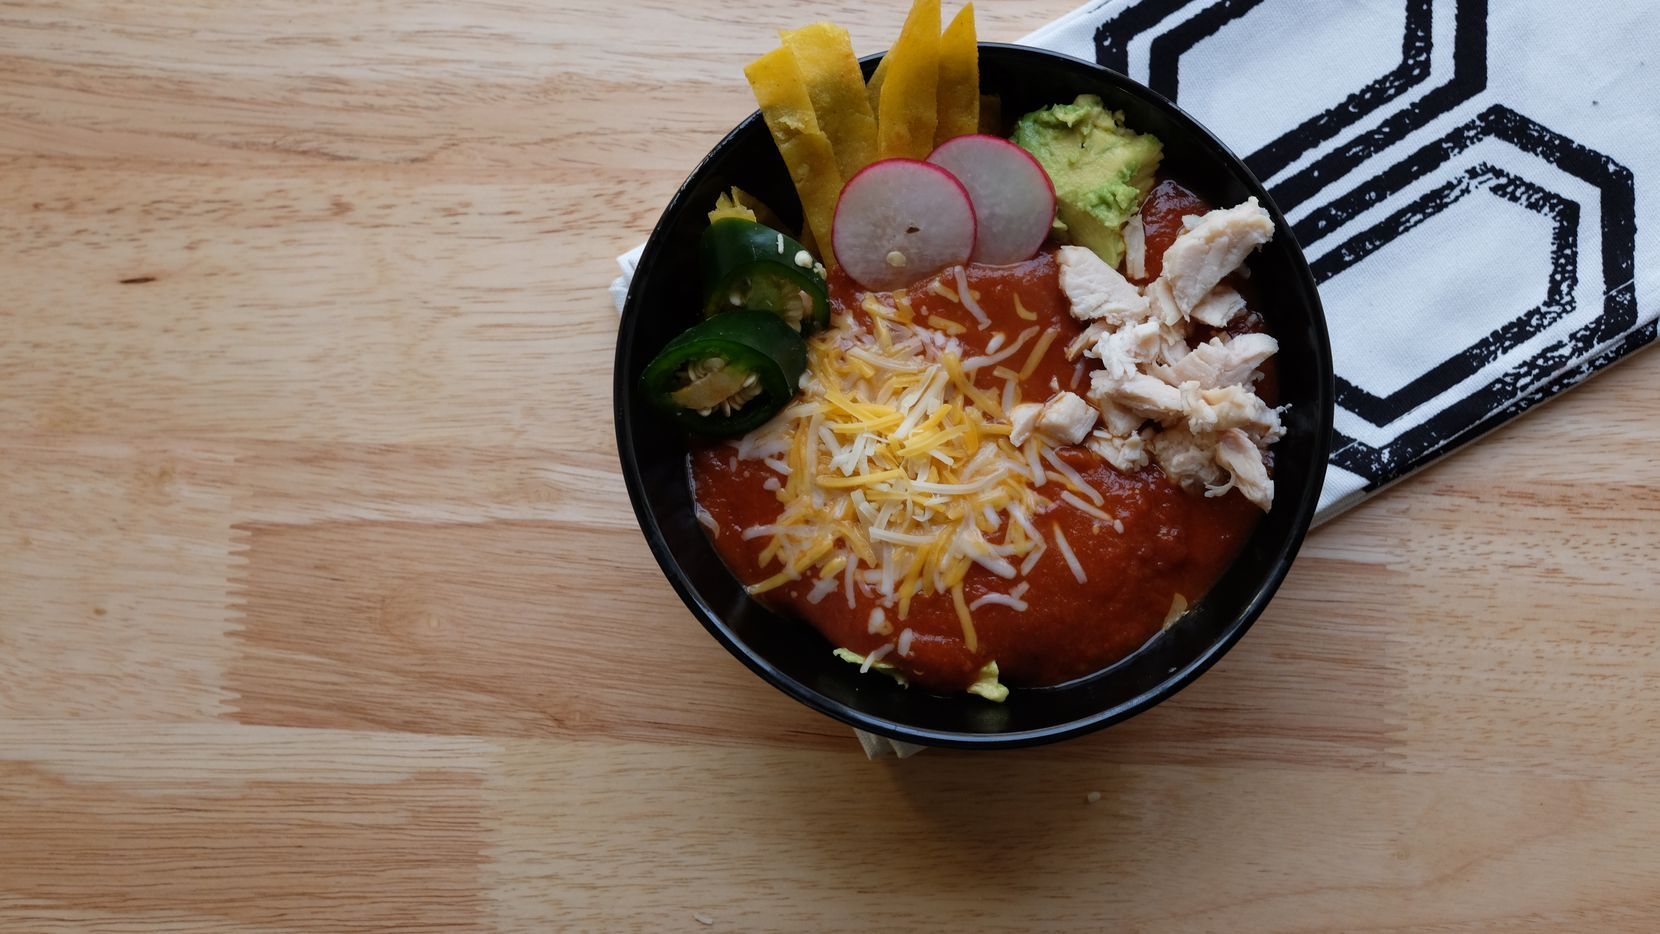 Dean's Tortilla Soup with South of the Border Flavors